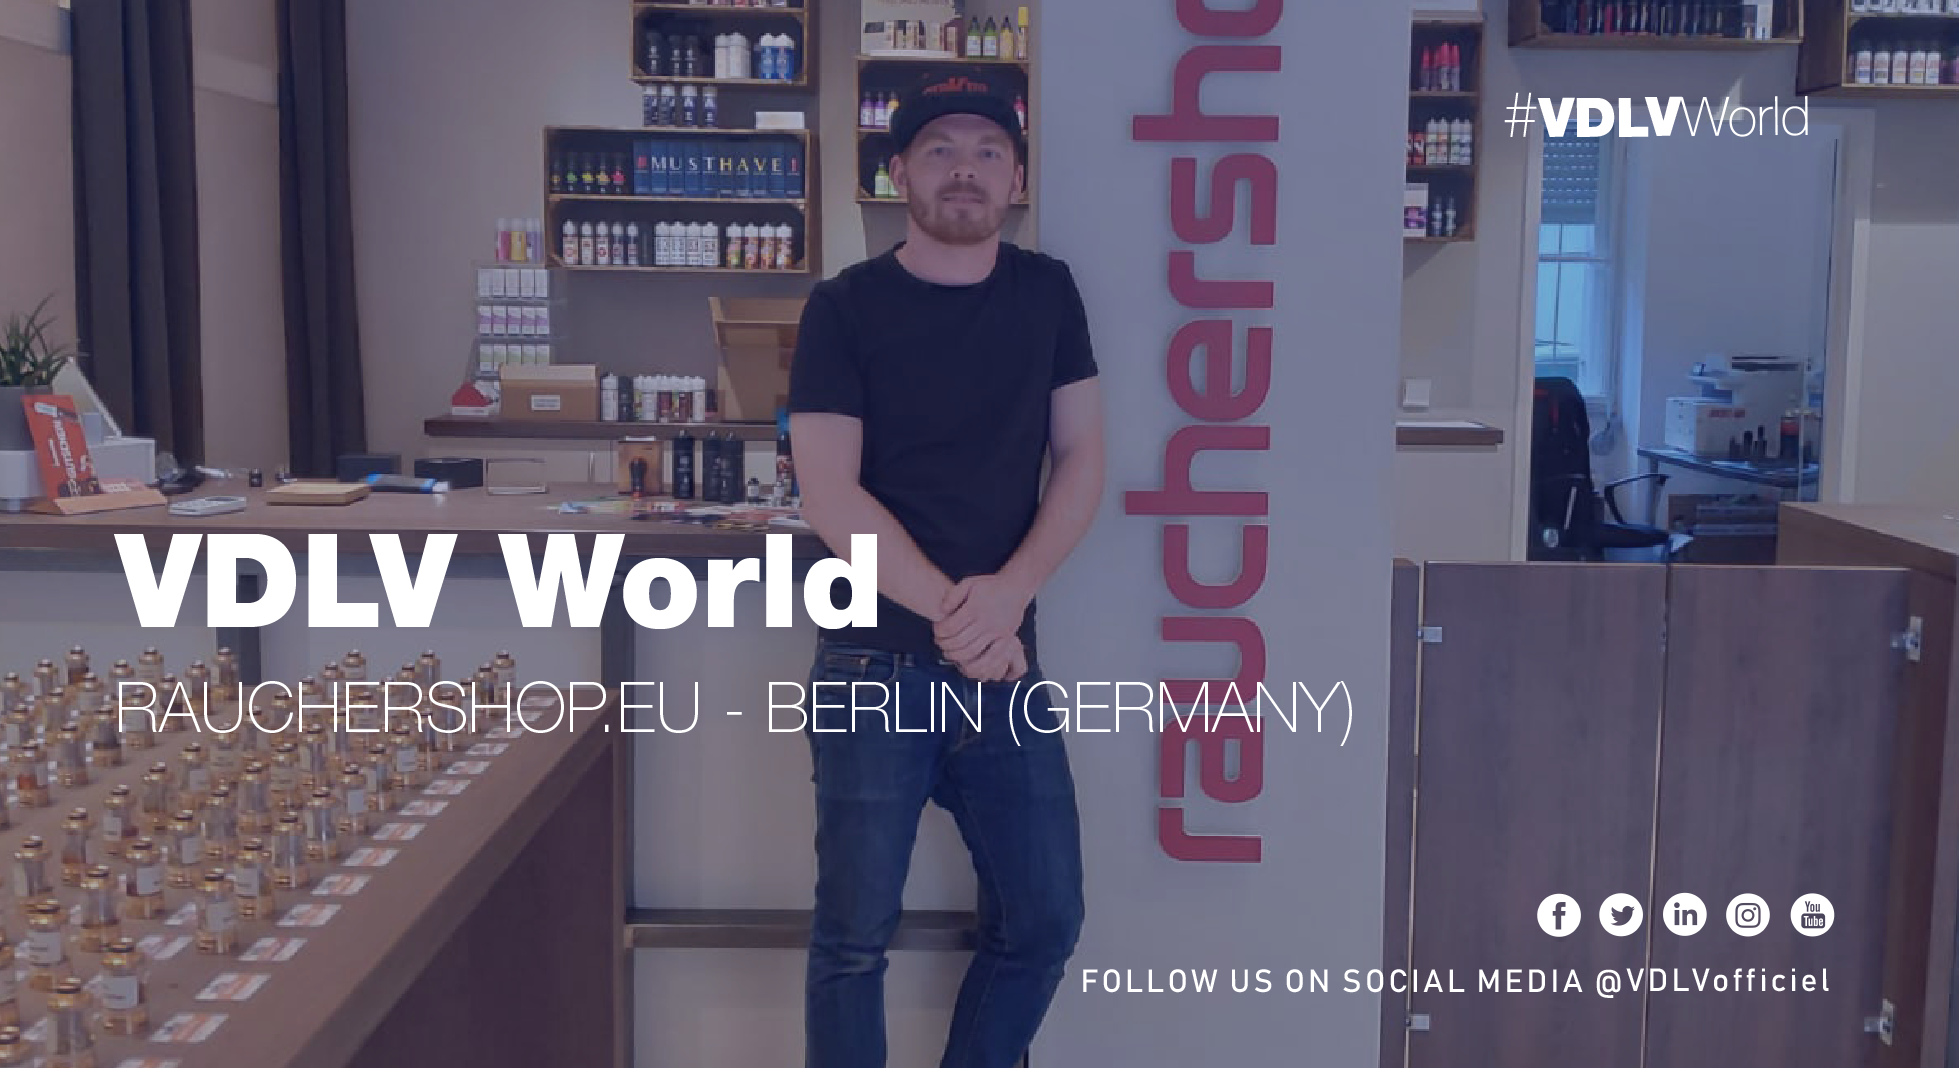 VDLV World – Rauchershop.eu Berlin